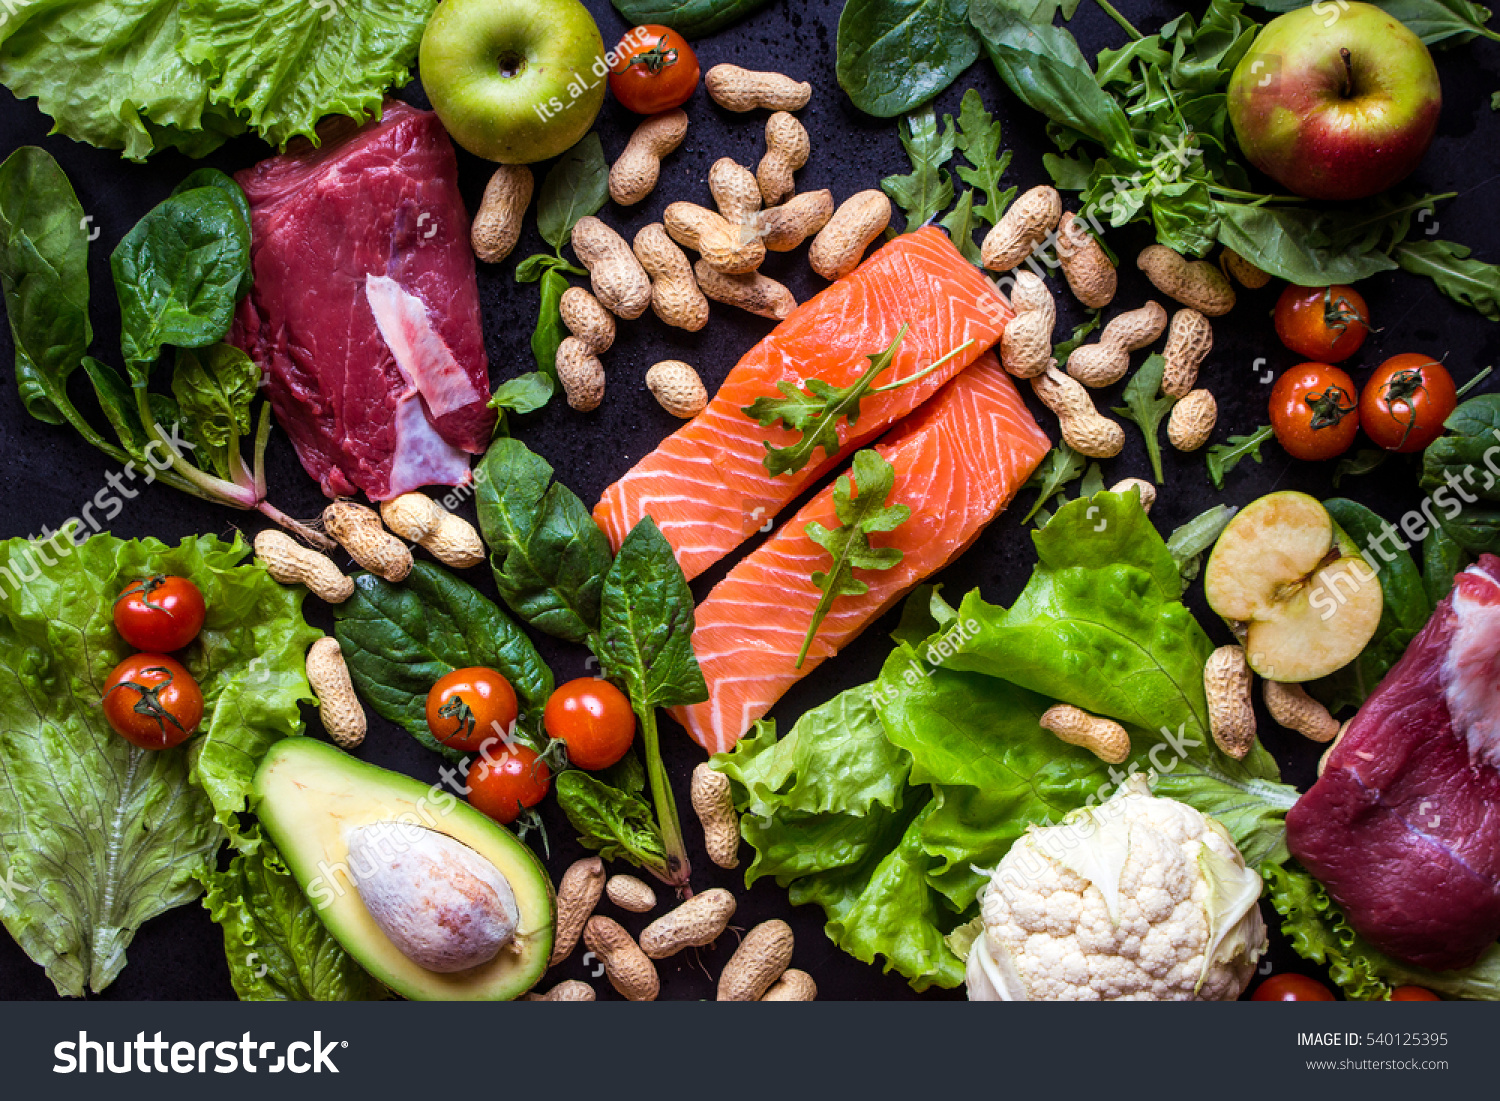 Online image photo editor shutterstock editor for Fish and veggie diet